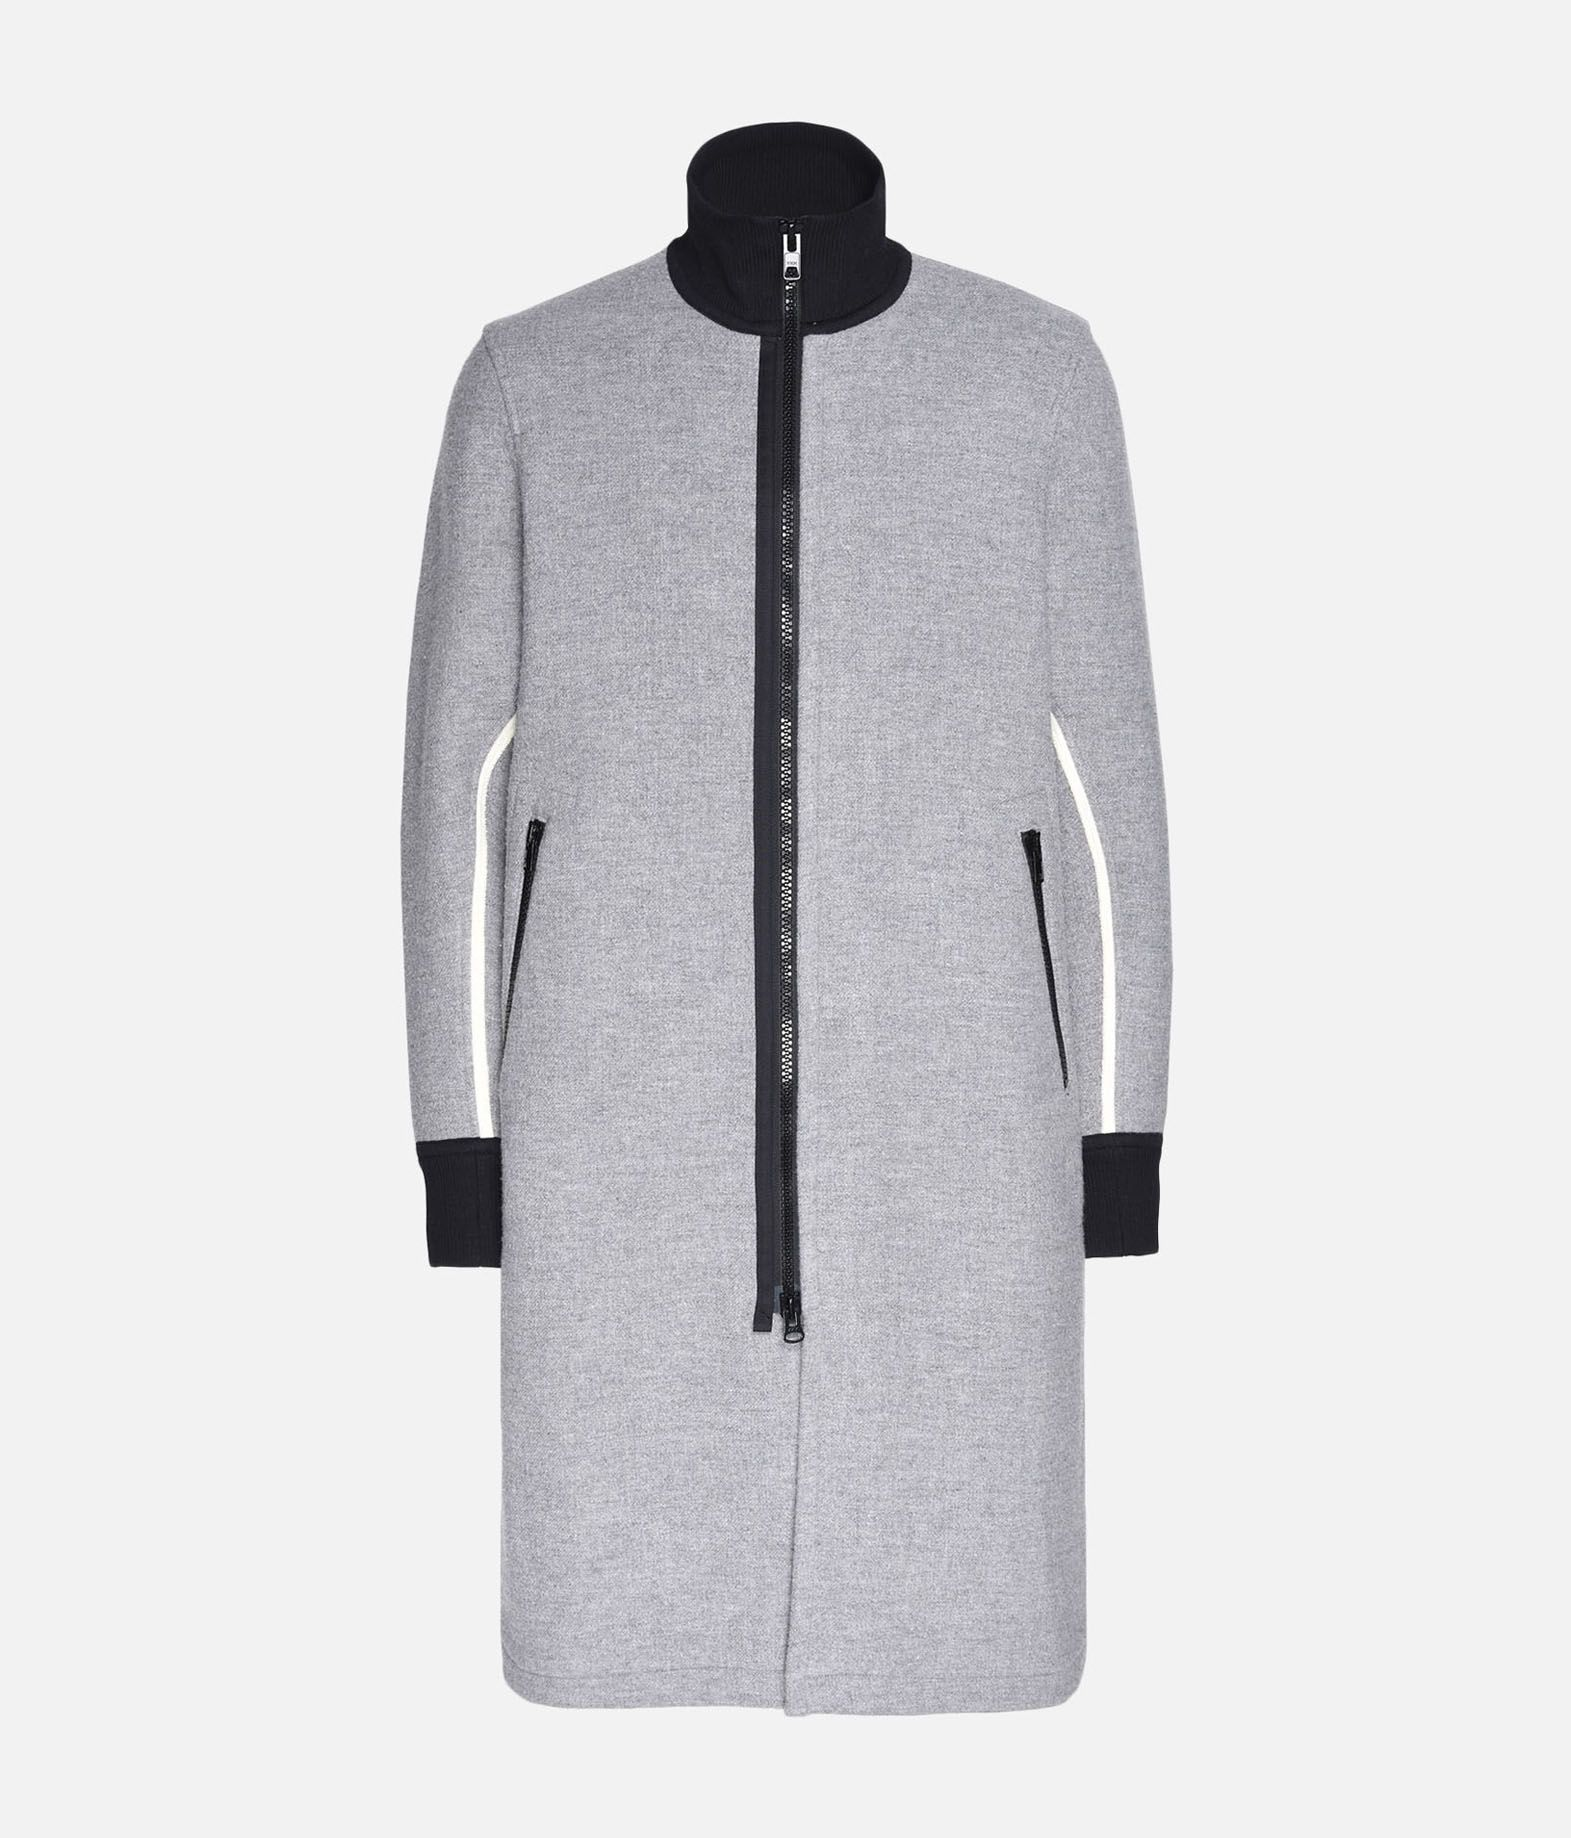 Y-3 Y-3 Spacer Wool Coat Coat Man f